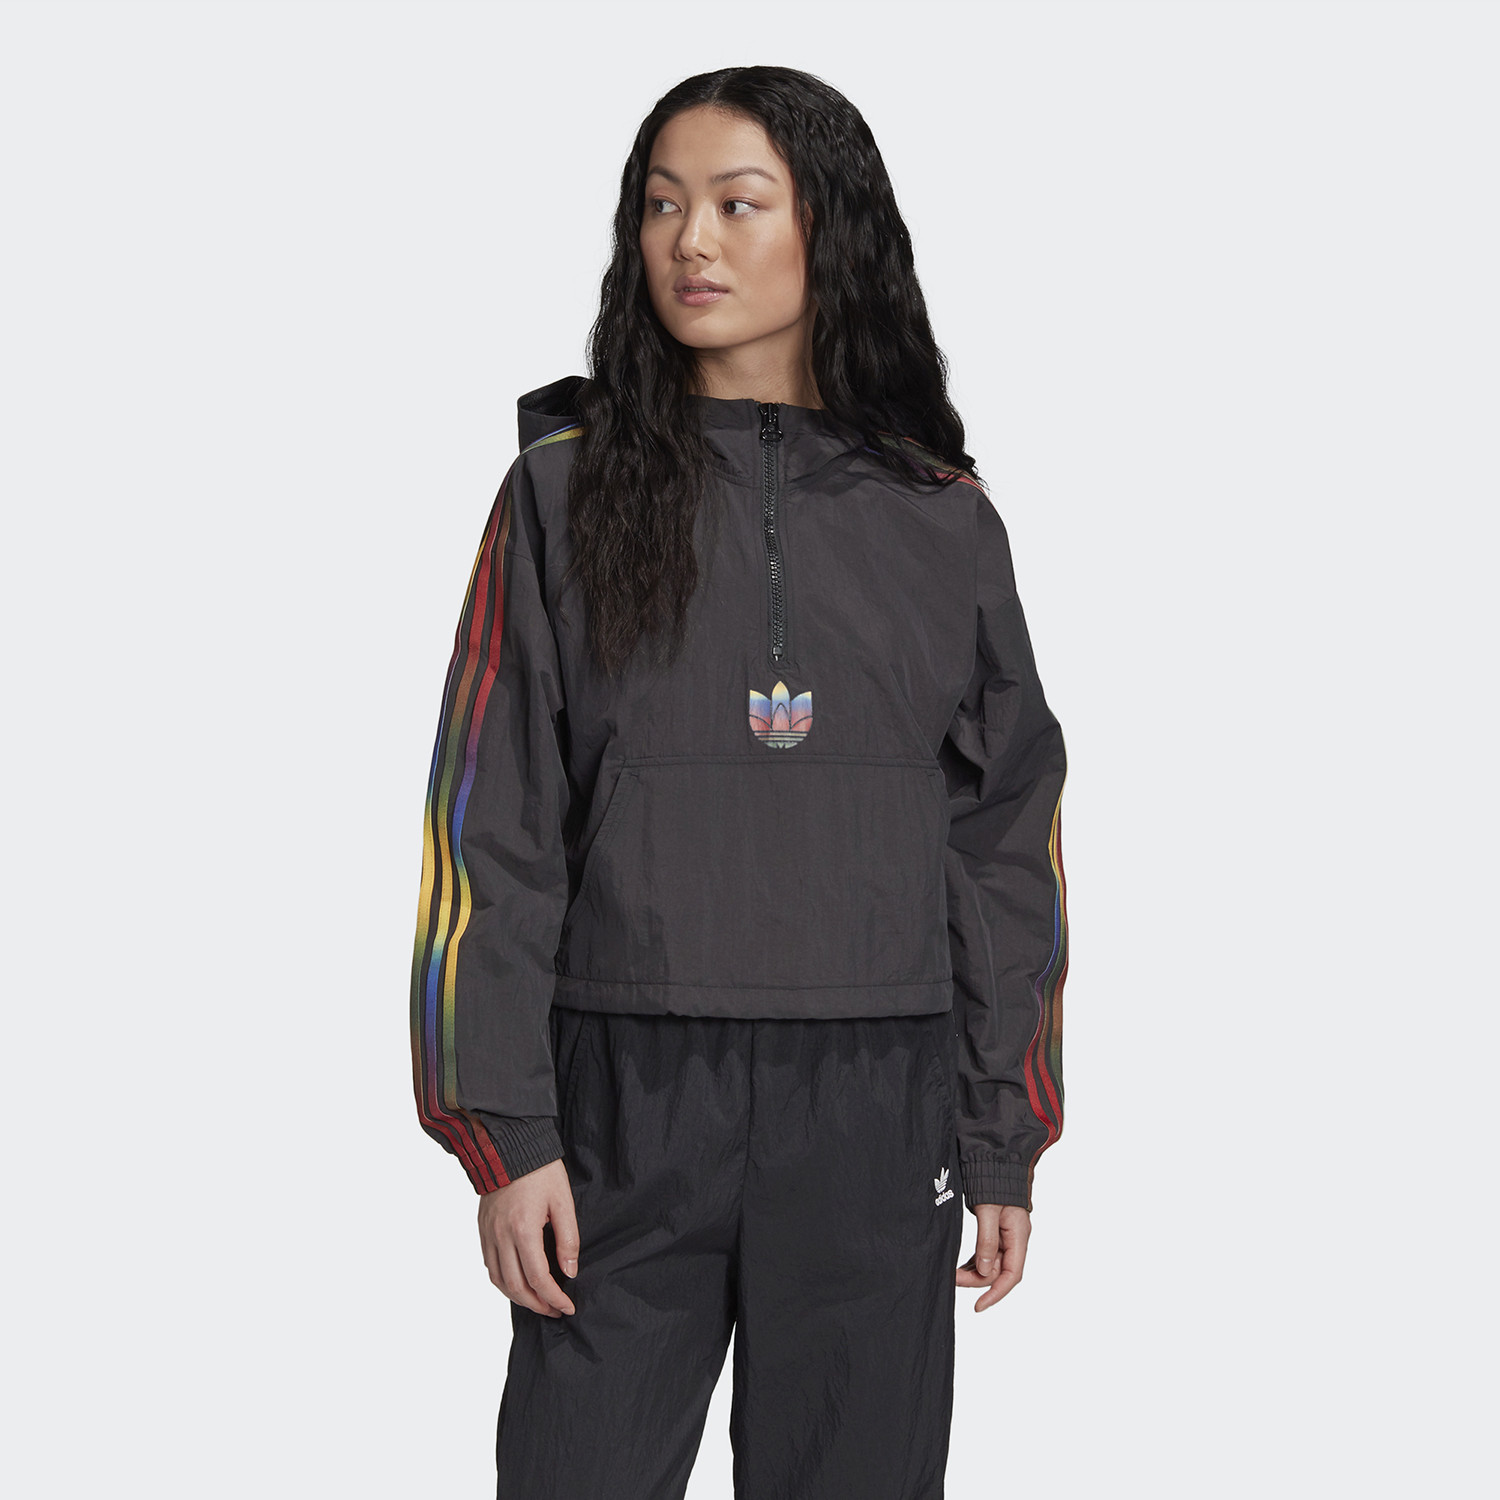 adidas Originals Cropped Halfzip Γυναικείο Φούτερ (9000058890_1469)